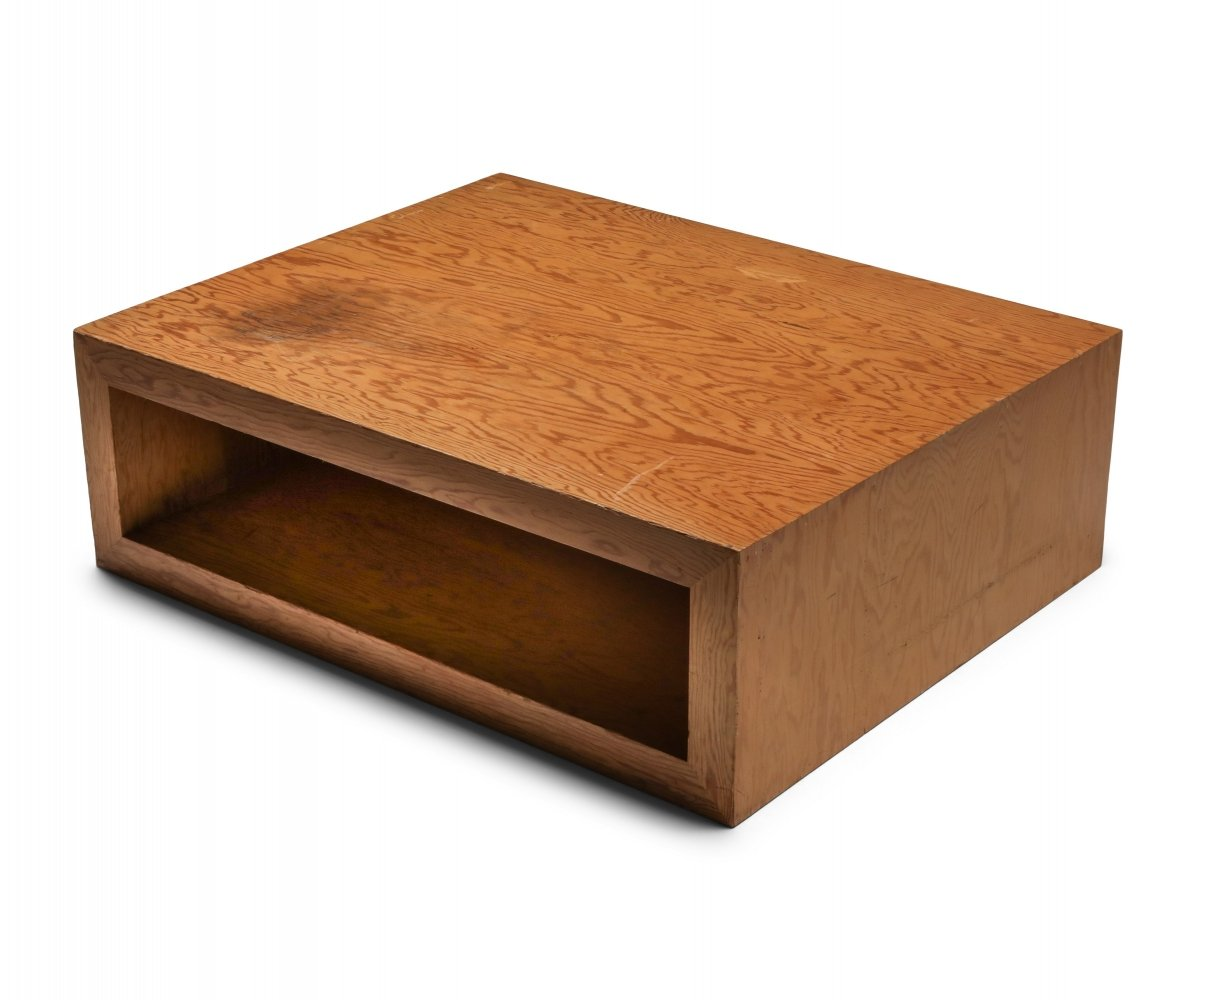 Pitch pine mid-century coffee table, 1960